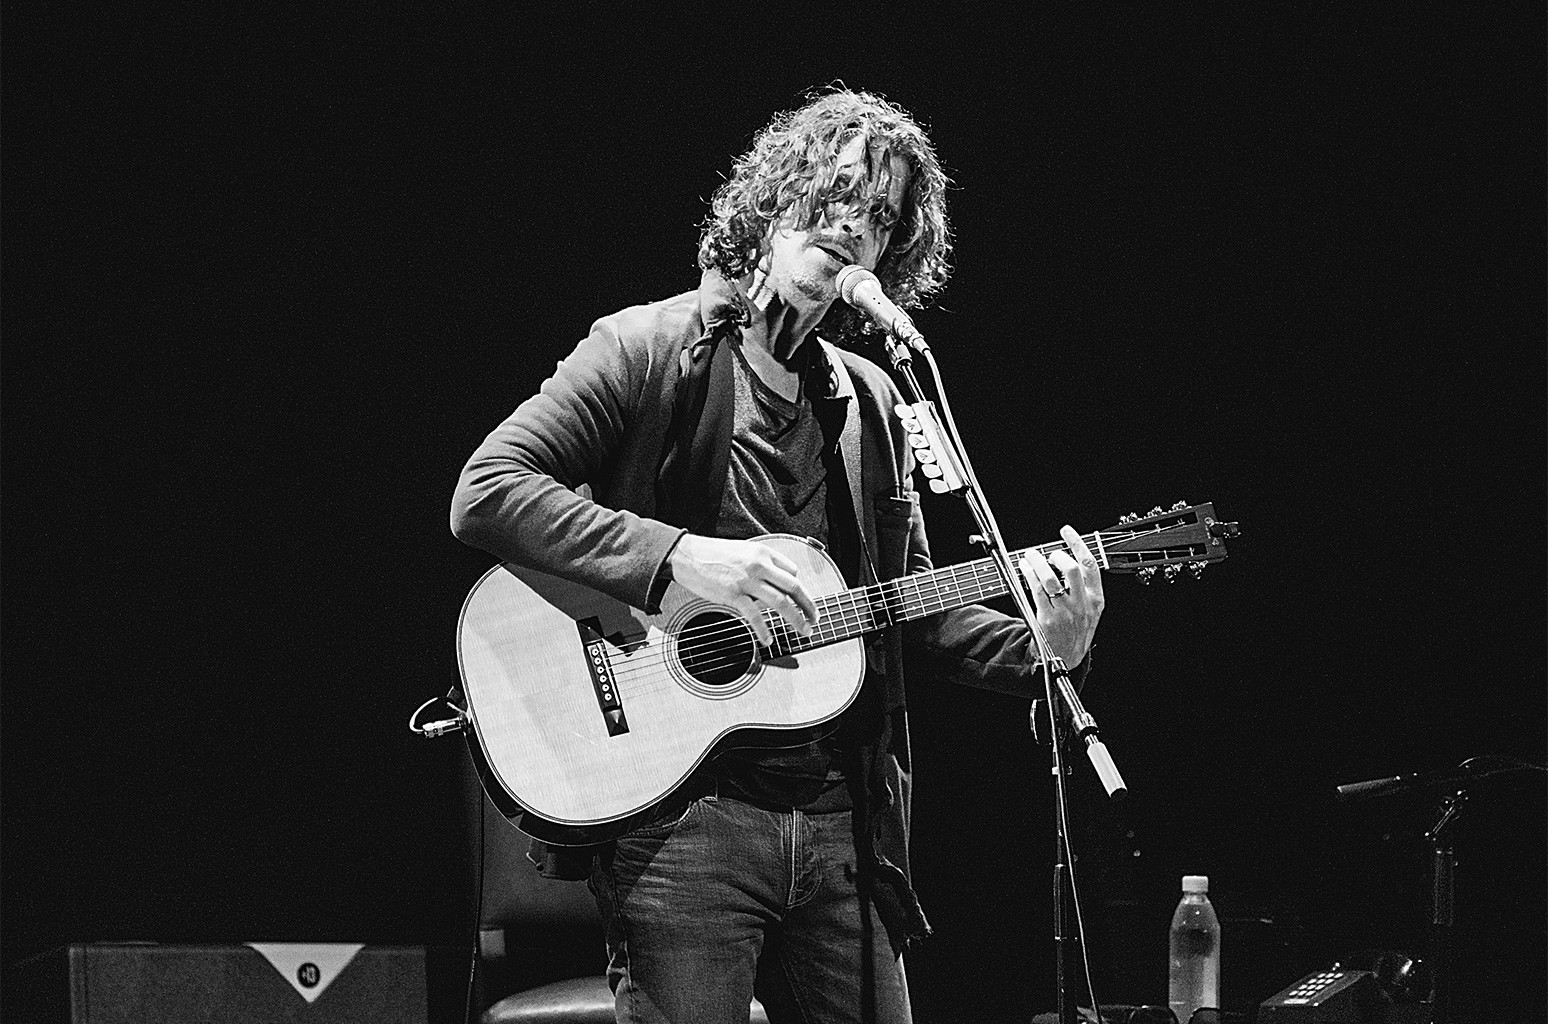 Chris Cornell performs in concert at ACL Live on Nov. 2, 2015 in Austin, Texas.